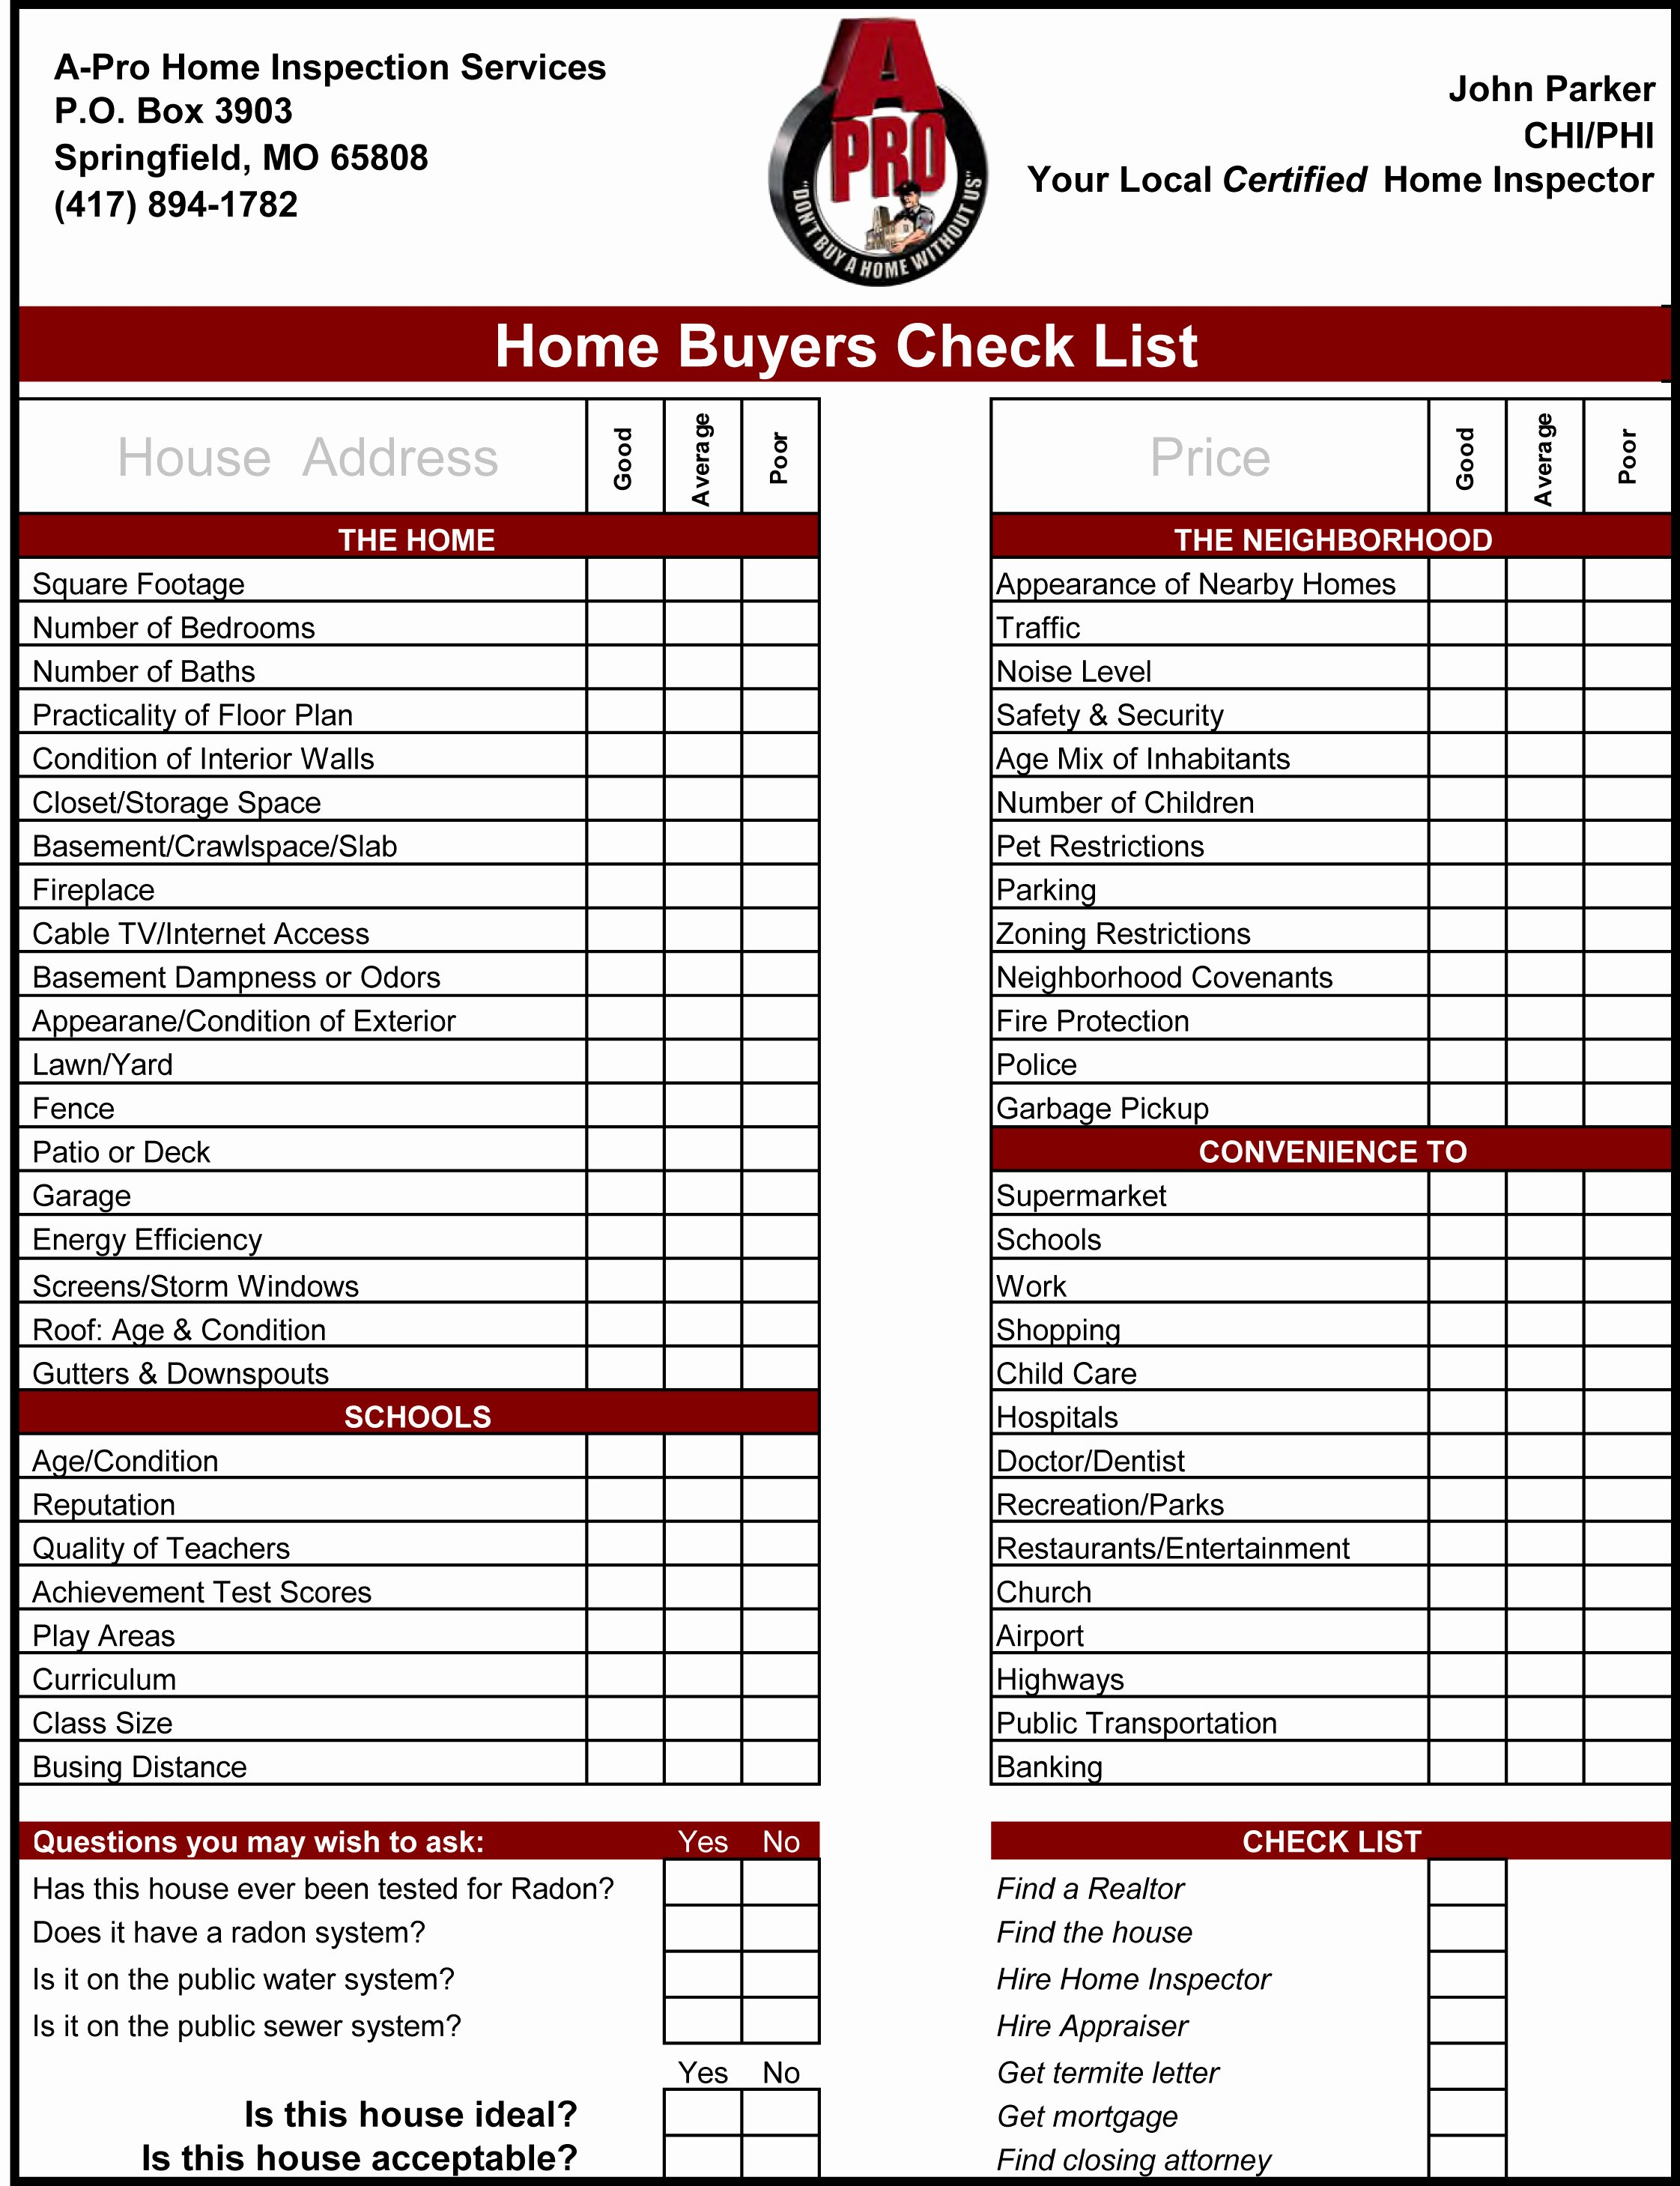 Home Inspection Checklist Templates Beautiful Home Inspection Checklist